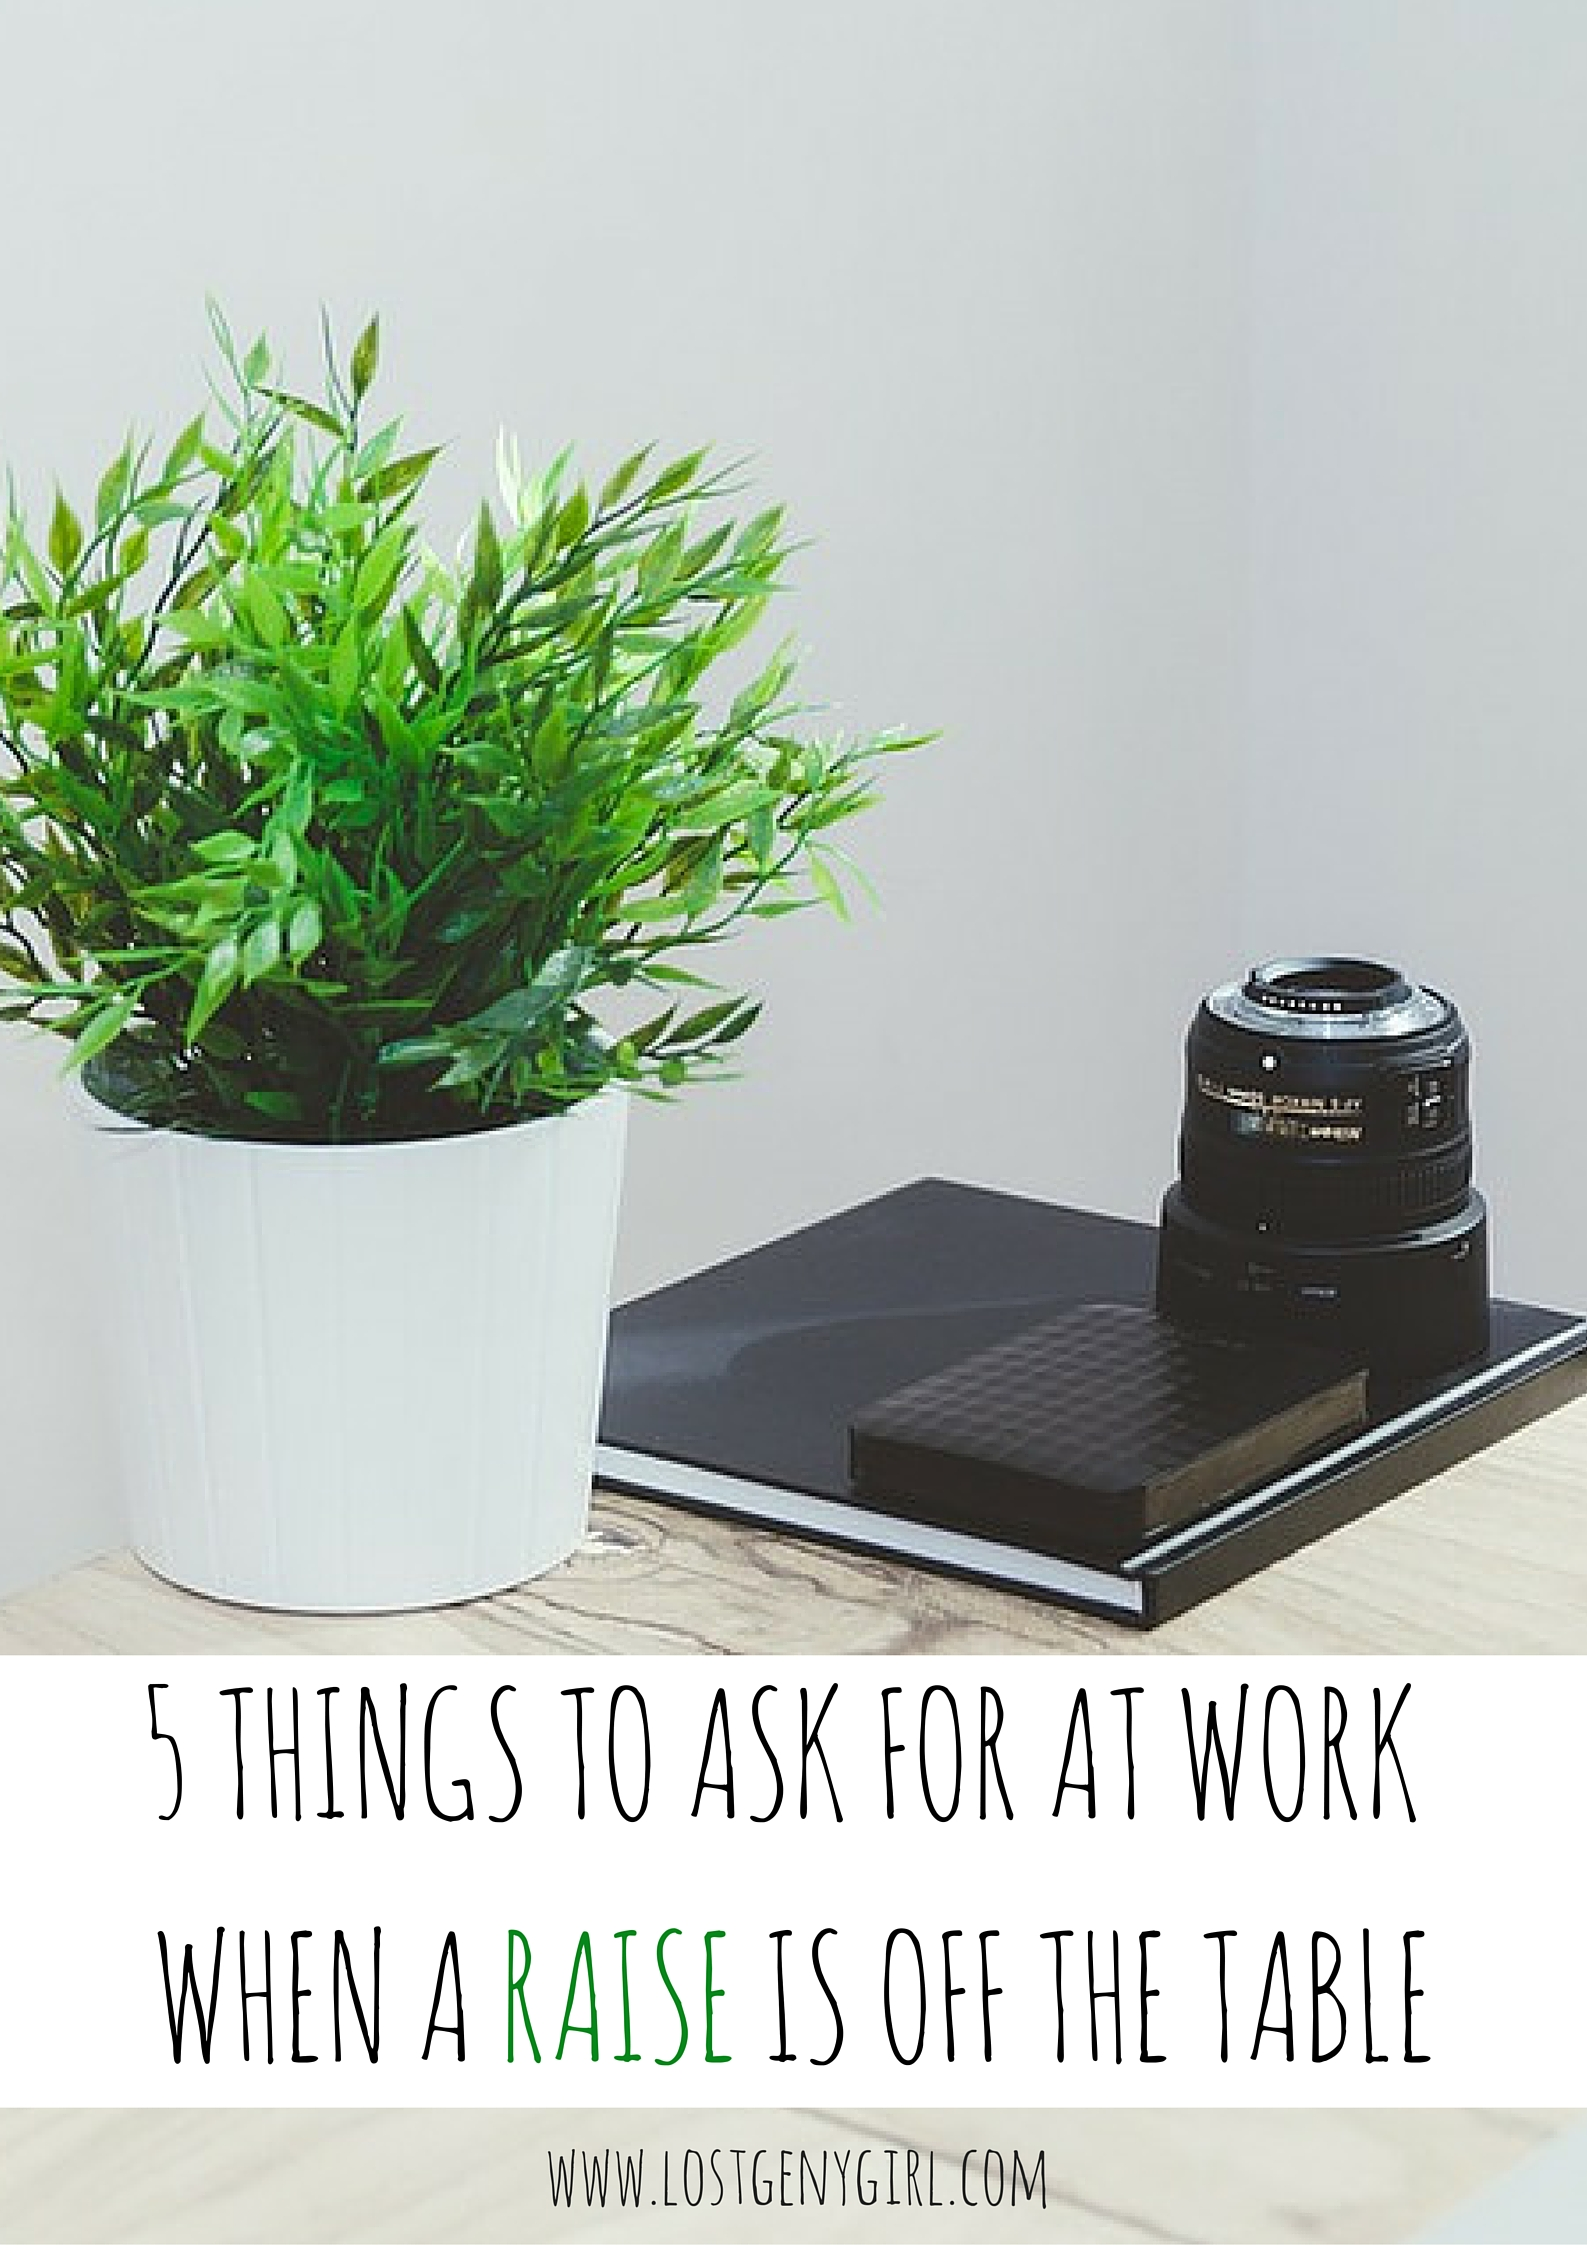 5 things to ask for at work when a raise is off the table gen y girl 5 things to ask for at work when a raise is off the table